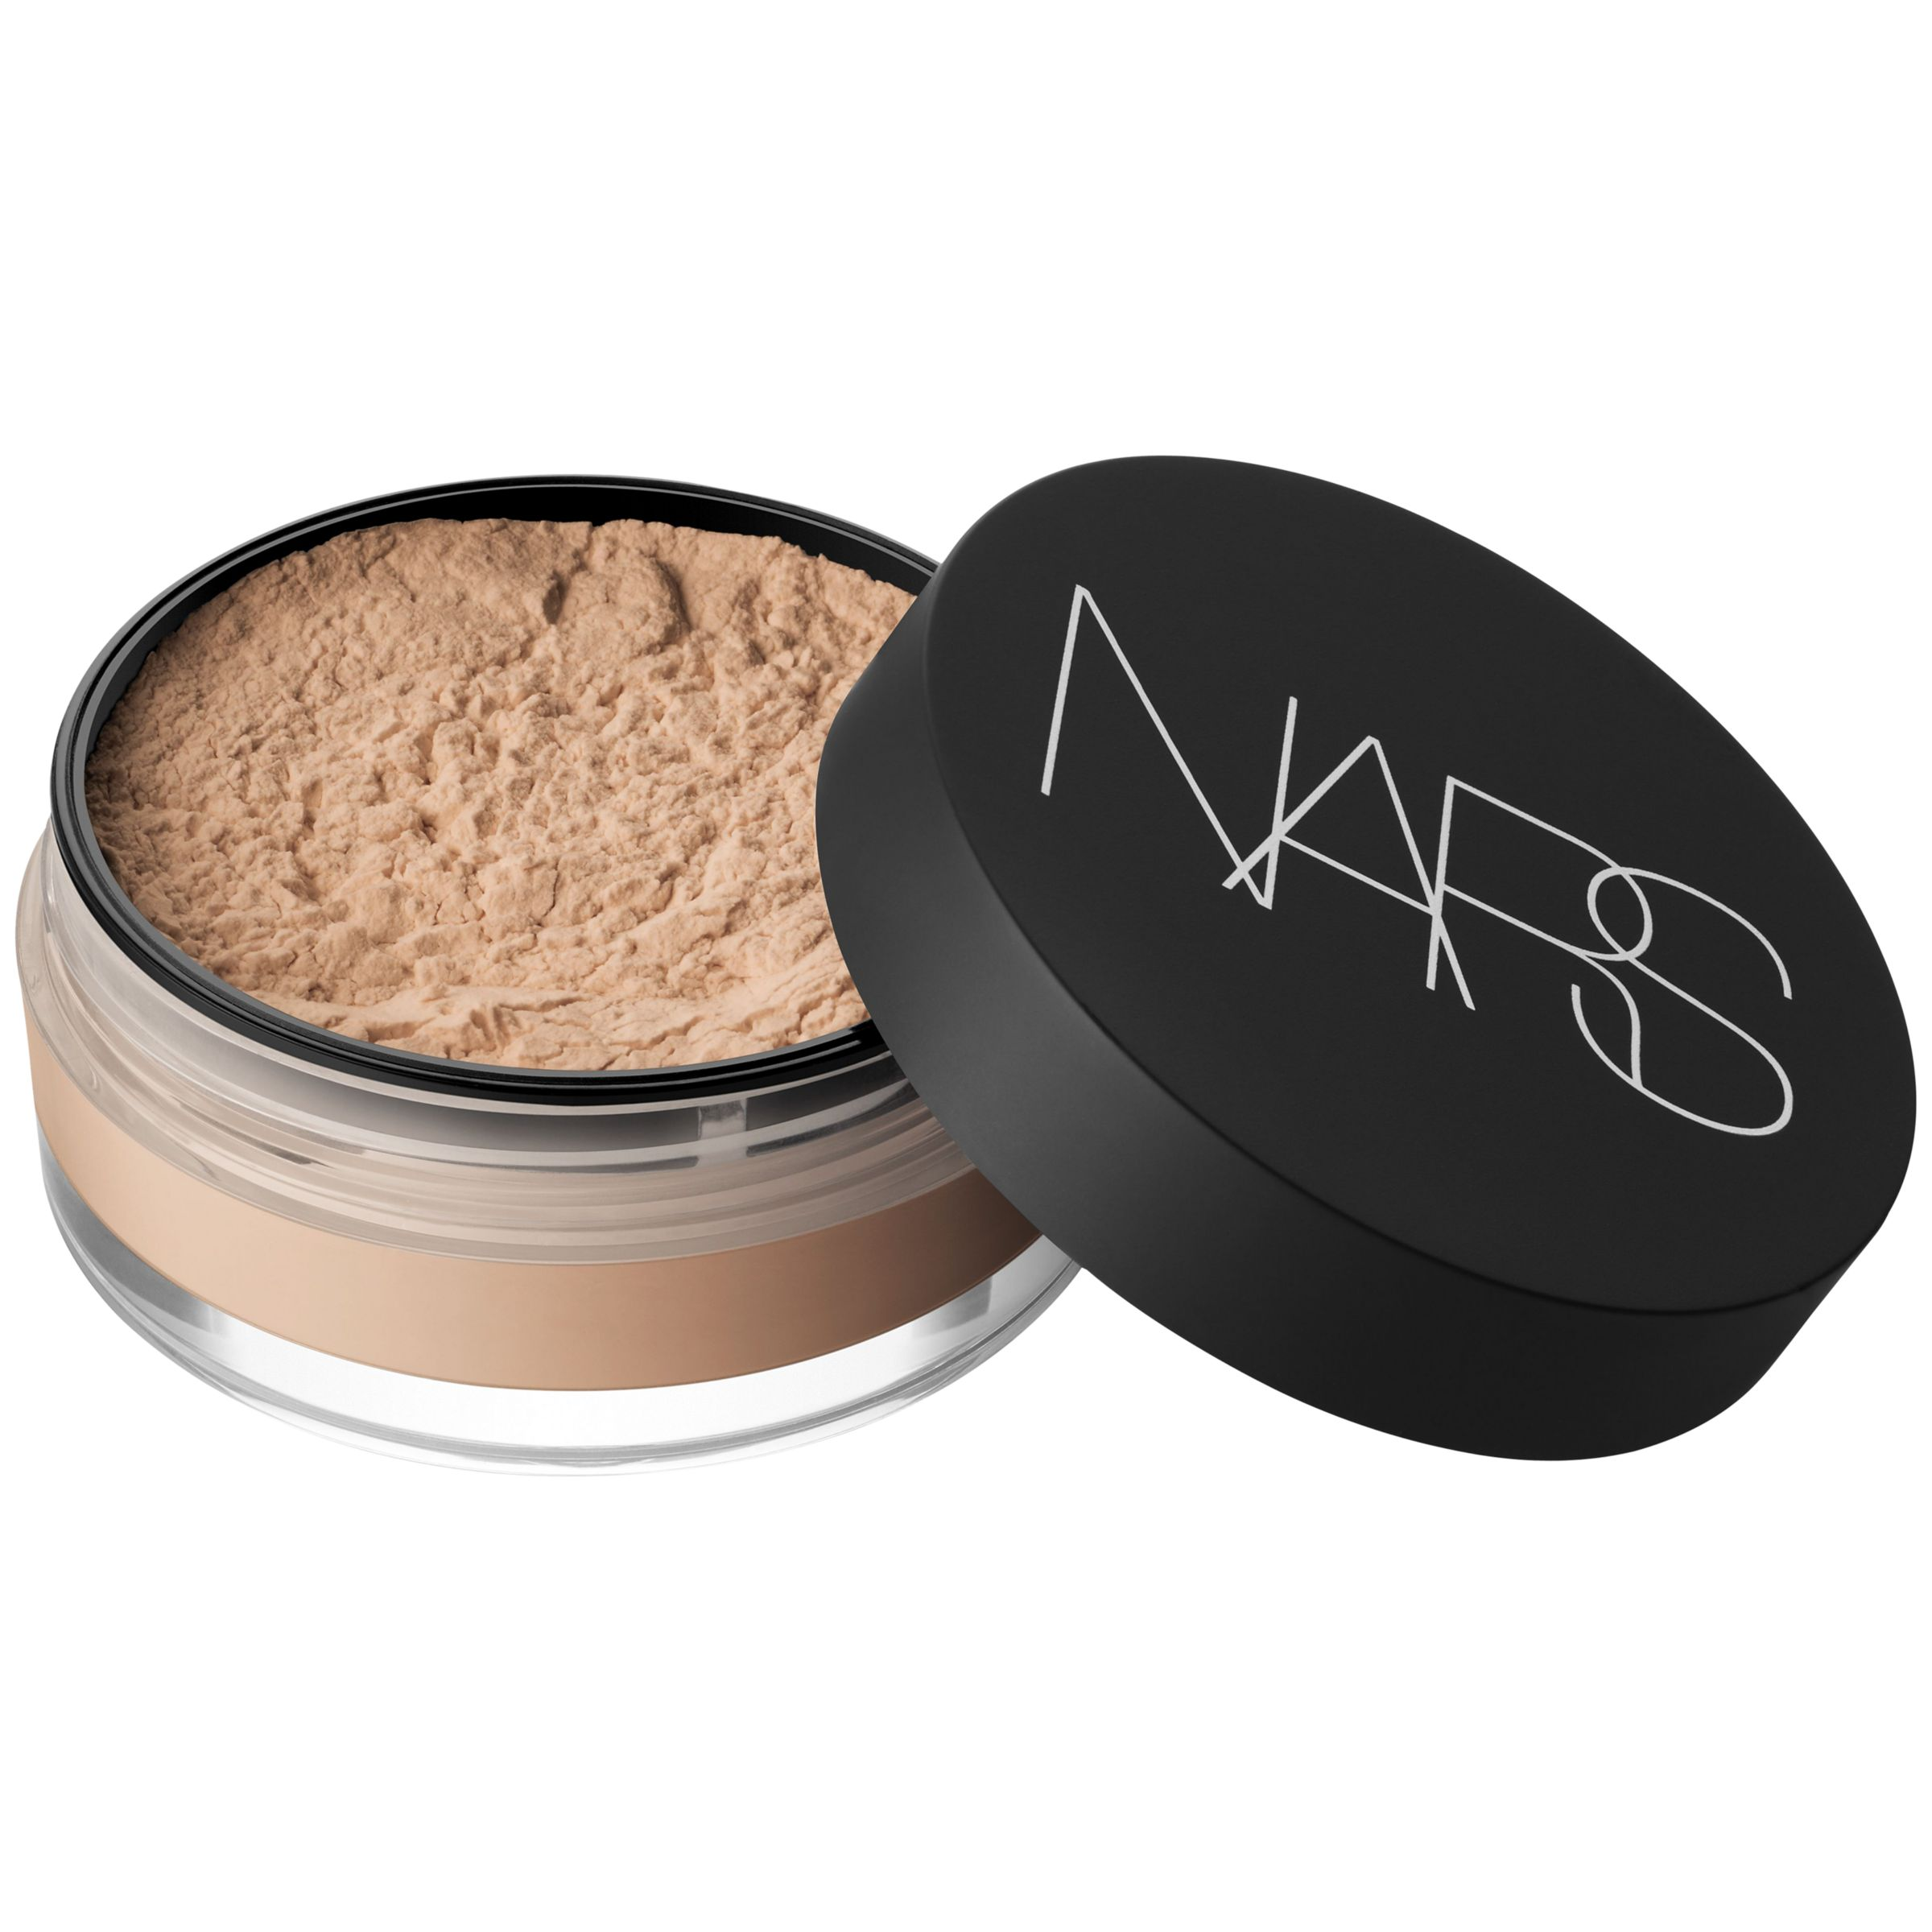 NARS NARS Soft Velvet Loose Powder